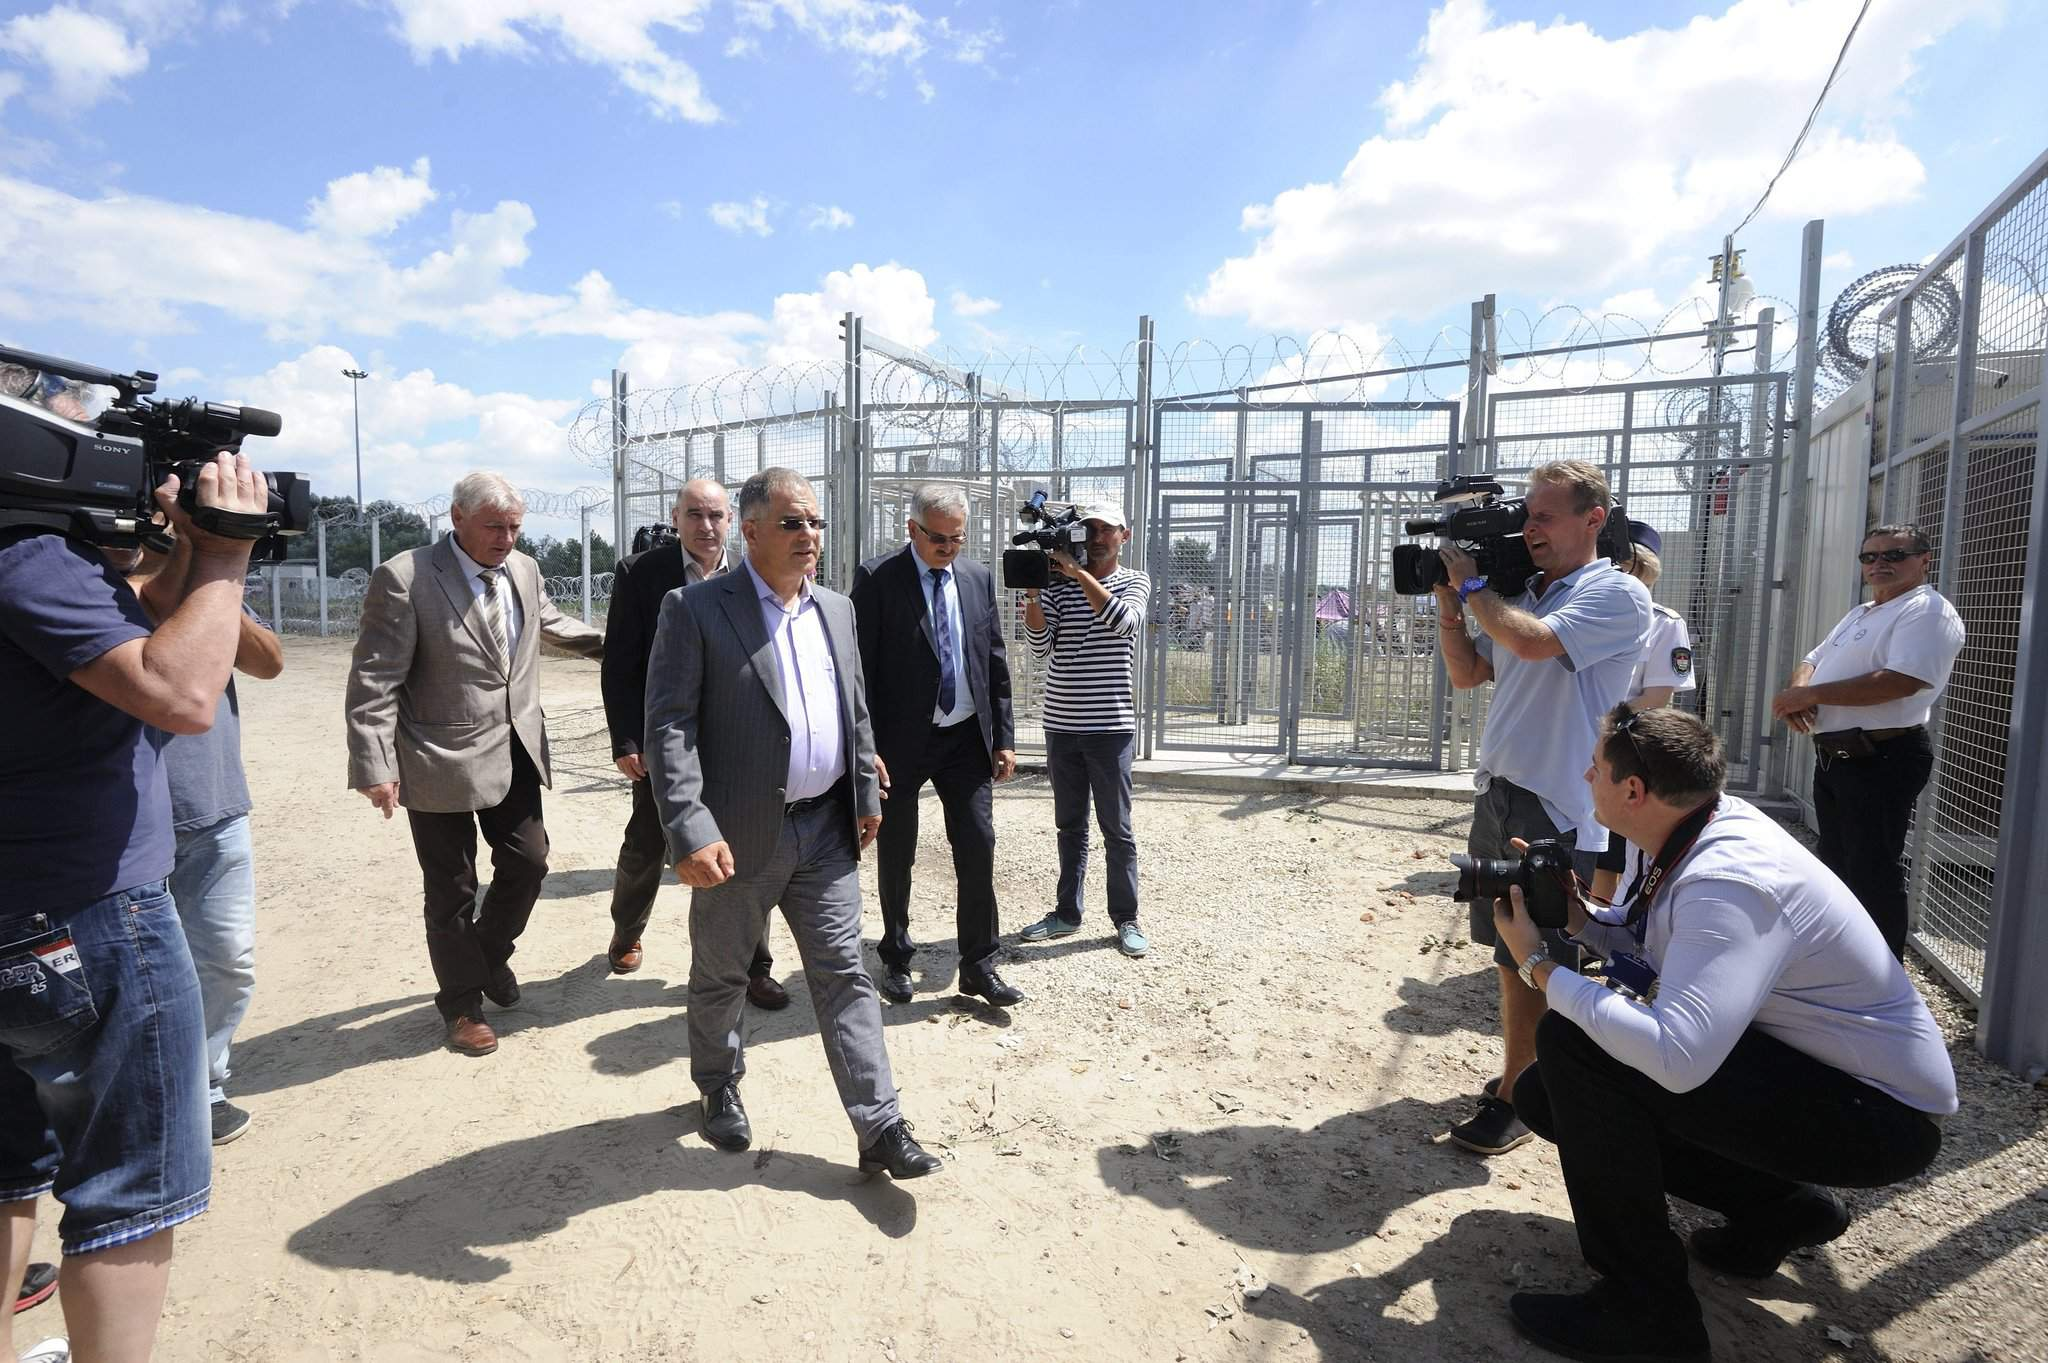 Fidesz: Hungary's border fence 'functioning well'